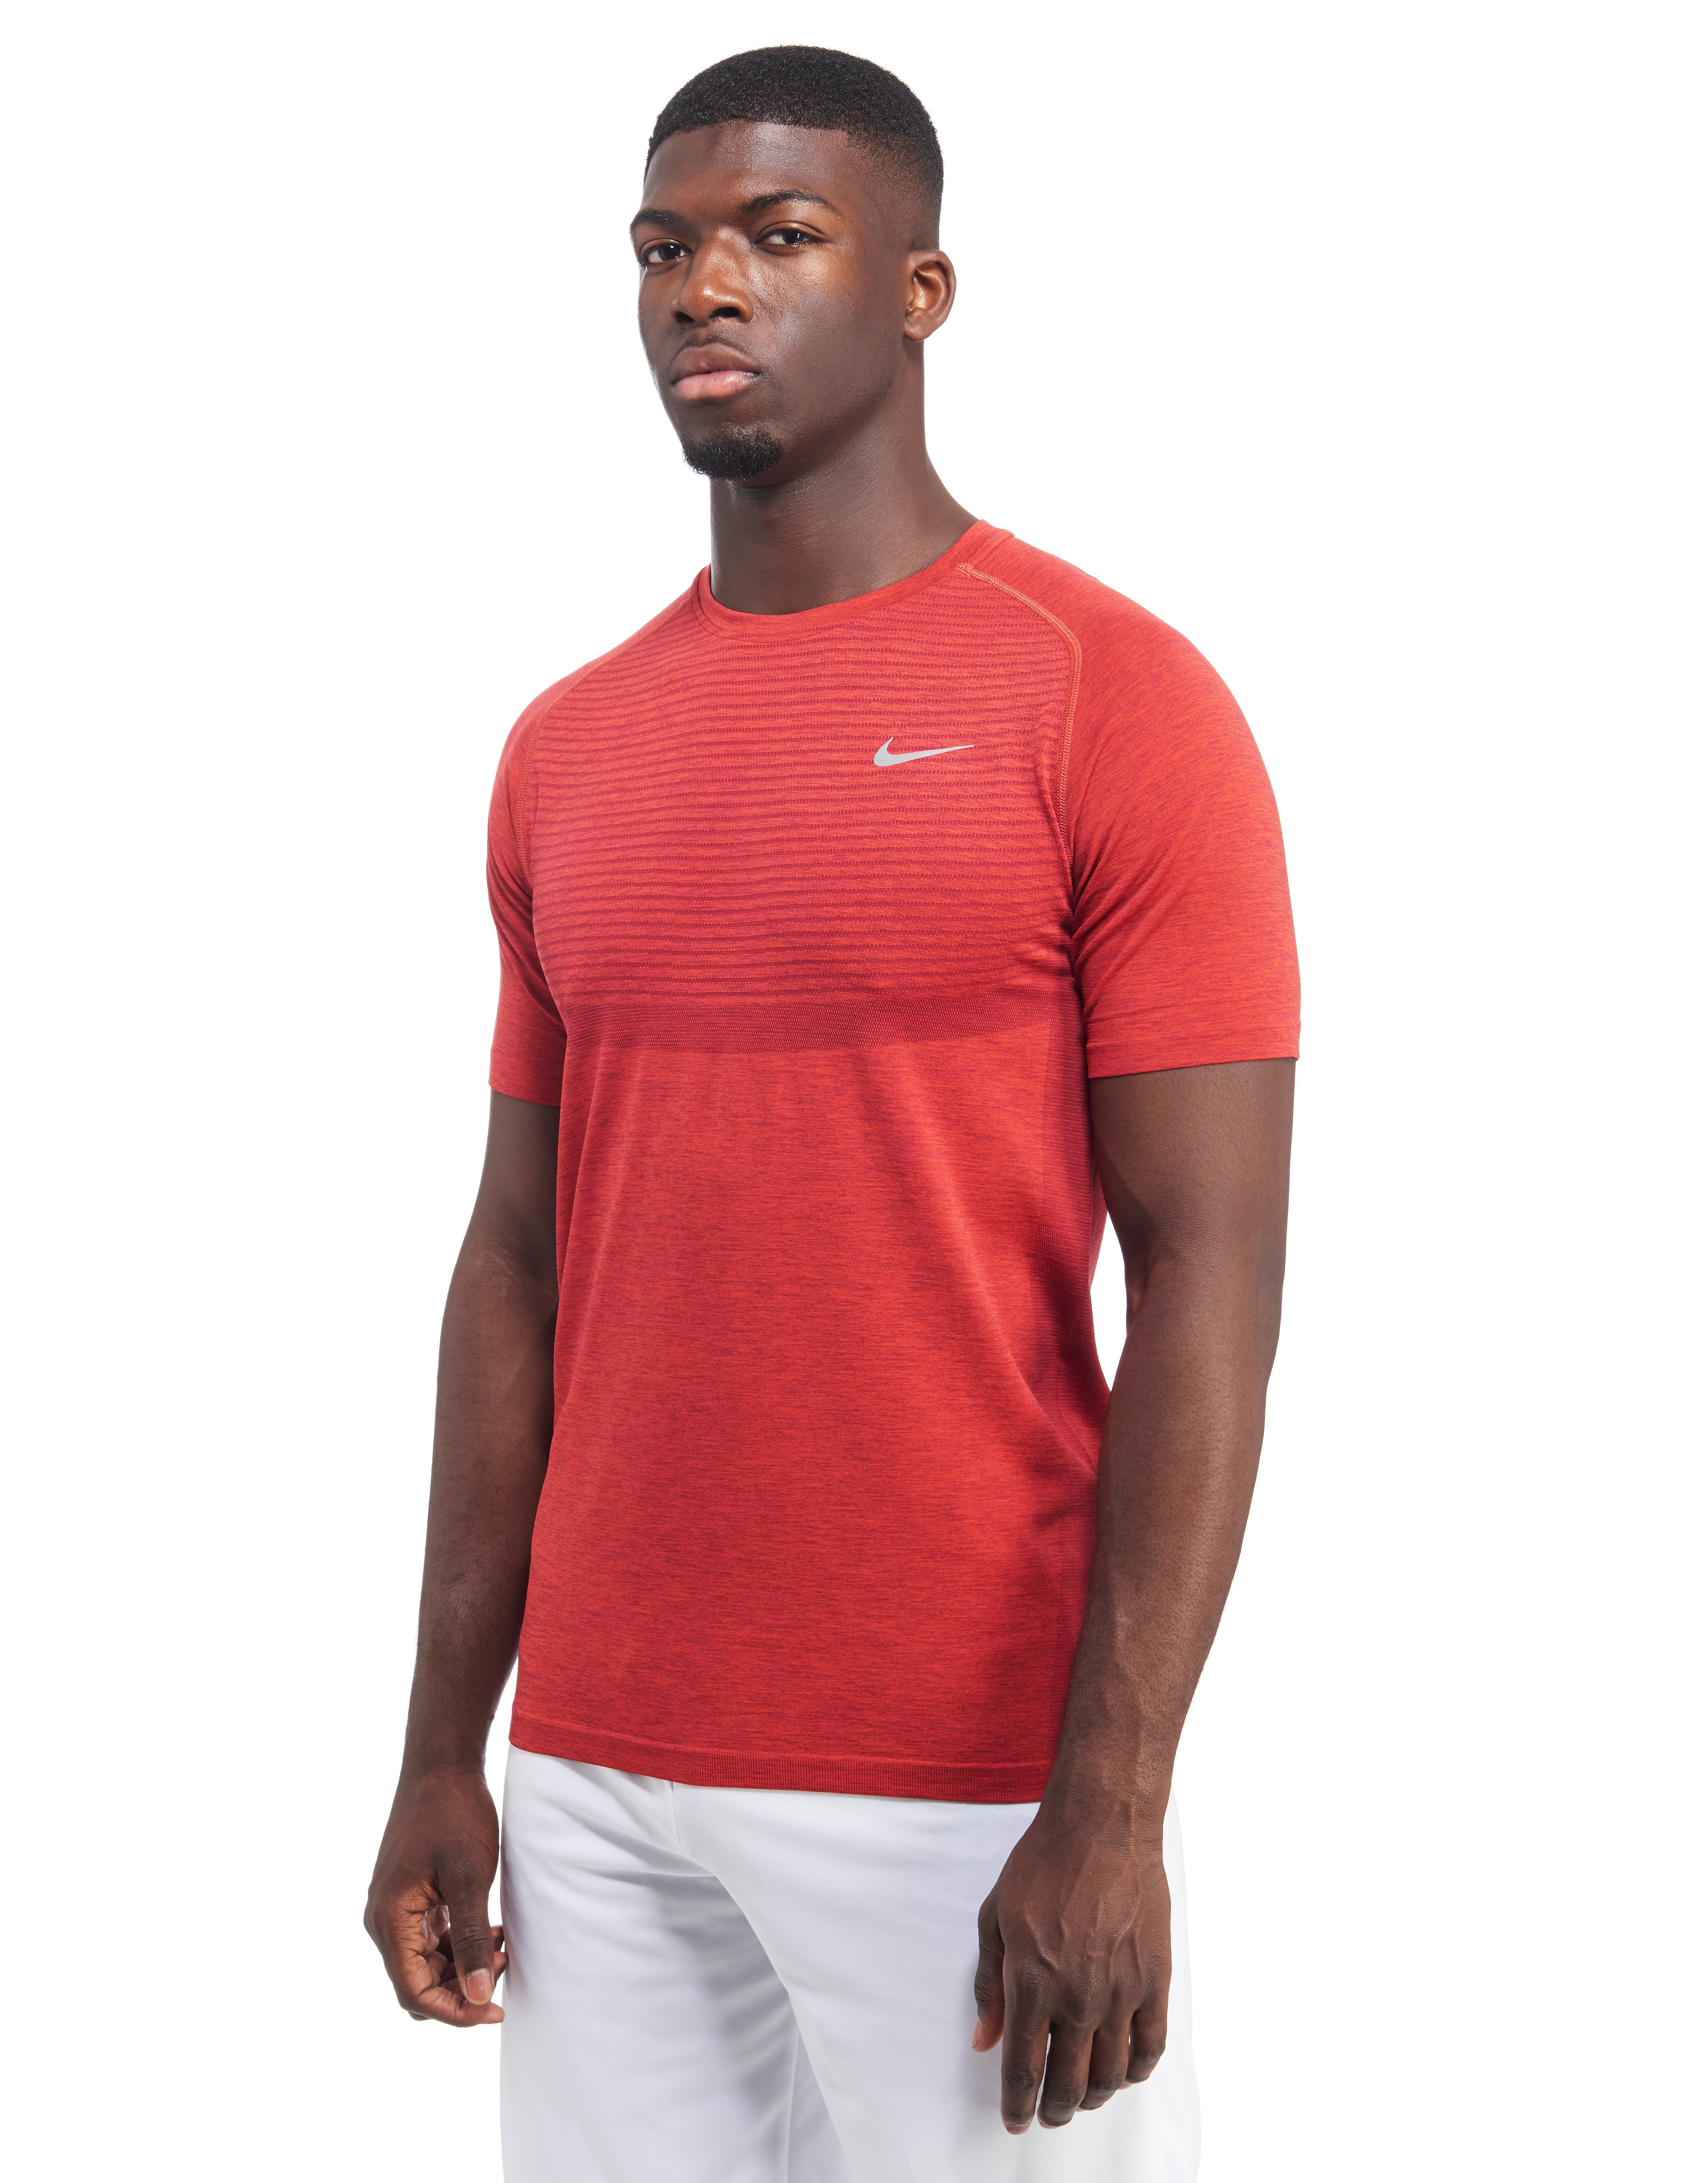 Nike Dri-FIT Knit T-Shirt